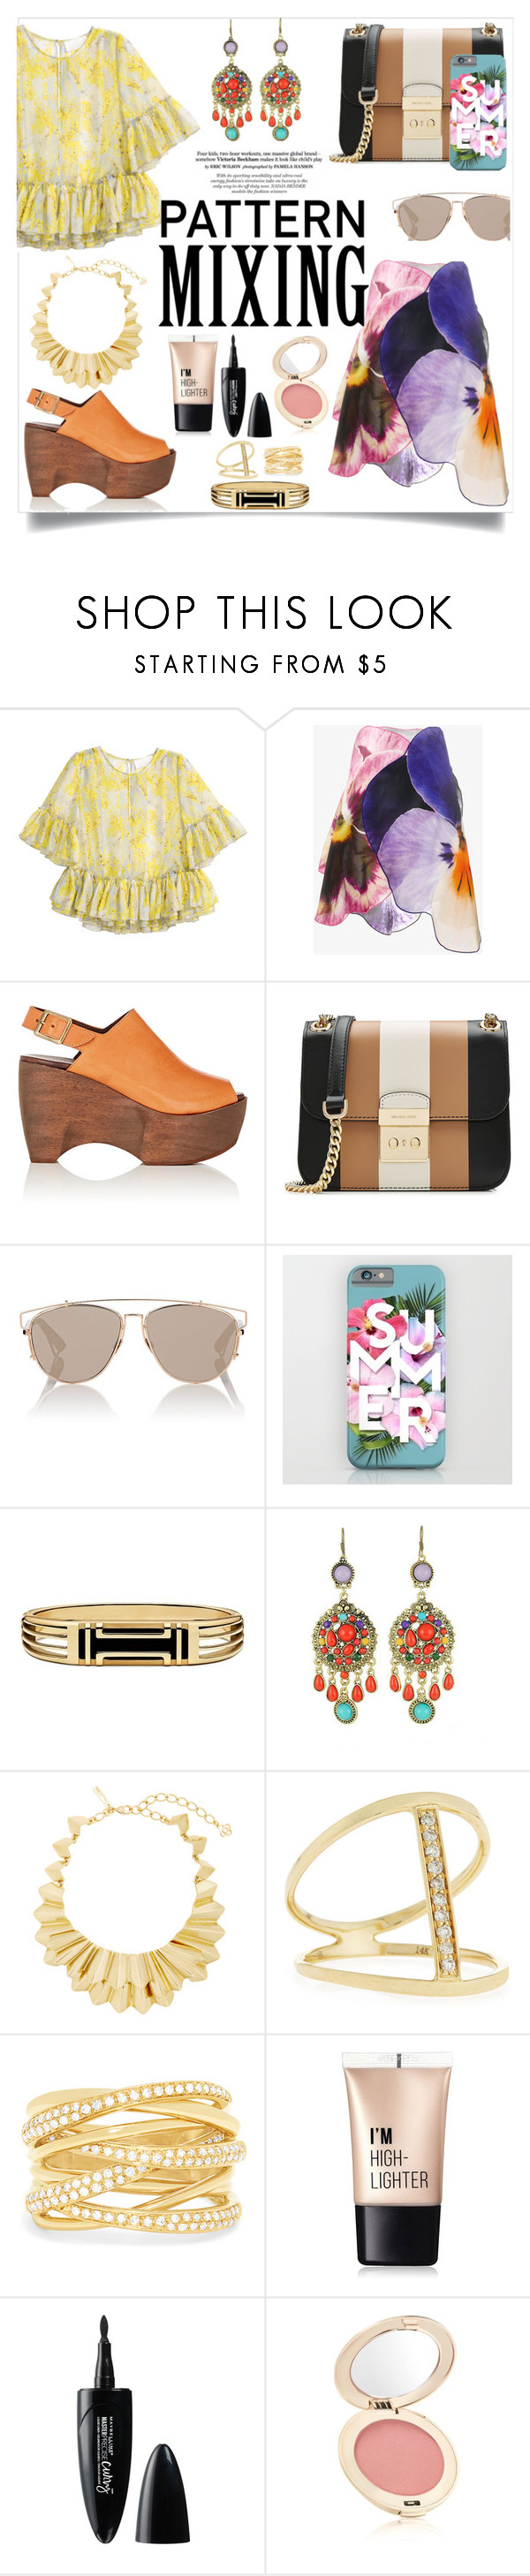 """Bold Colors - Pattern Mixing"" by allyssister ❤ liked on Polyvore featuring H&M, Christopher Kane, Simon Miller, MICHAEL Michael Kors, Christian Dior, Tory Burch, WithChic, Oscar de la Renta, Sydney Evan and Effy Jewelry"